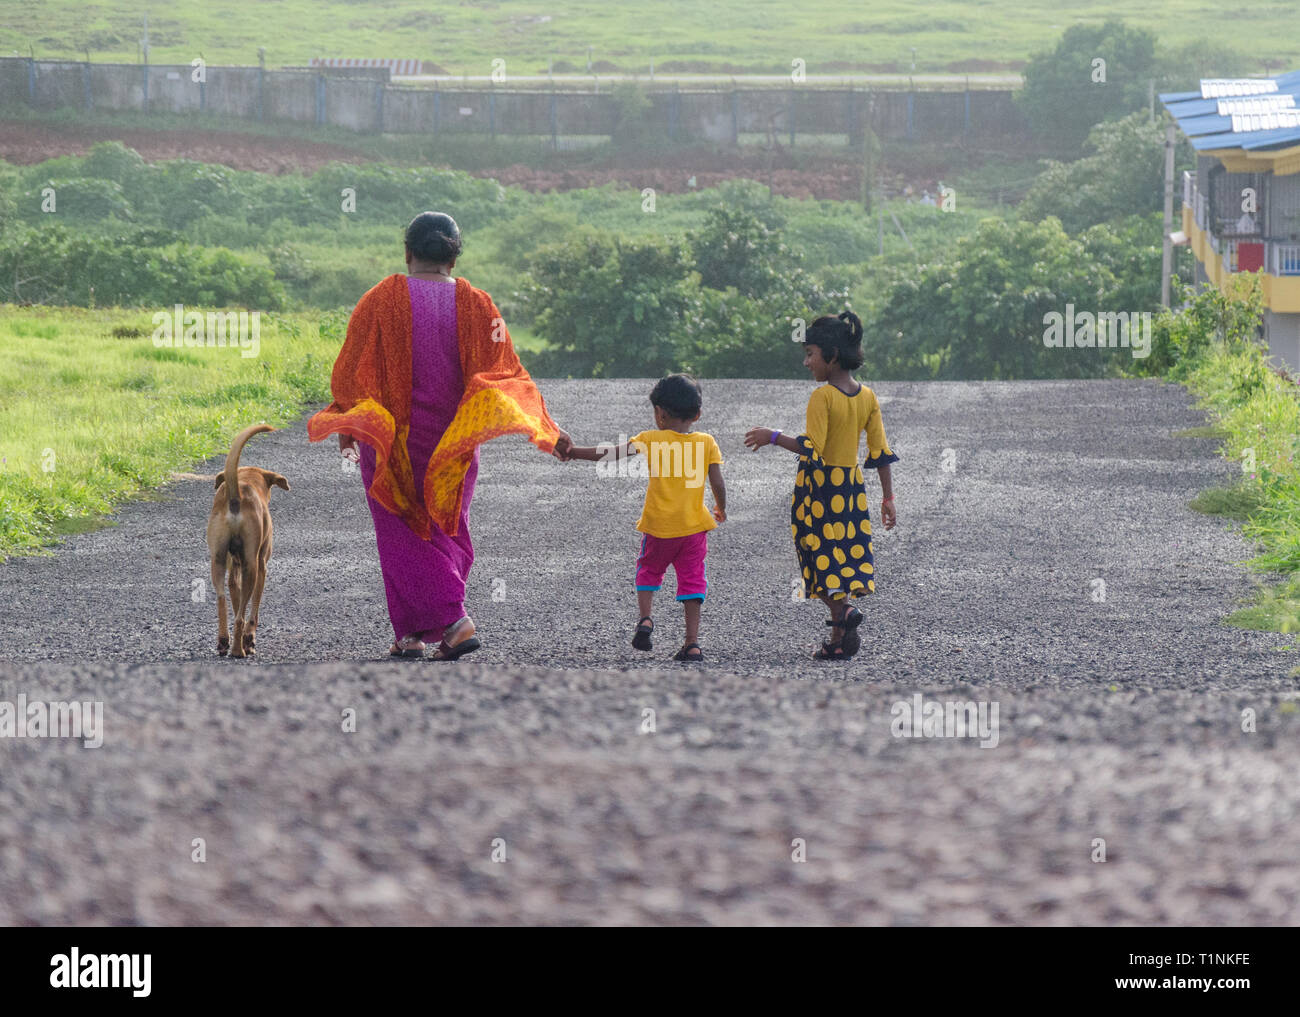 View from back of an Indian mother with her two young daughters, accompanied by a street dog, returning home after an evening stroll. - Stock Image